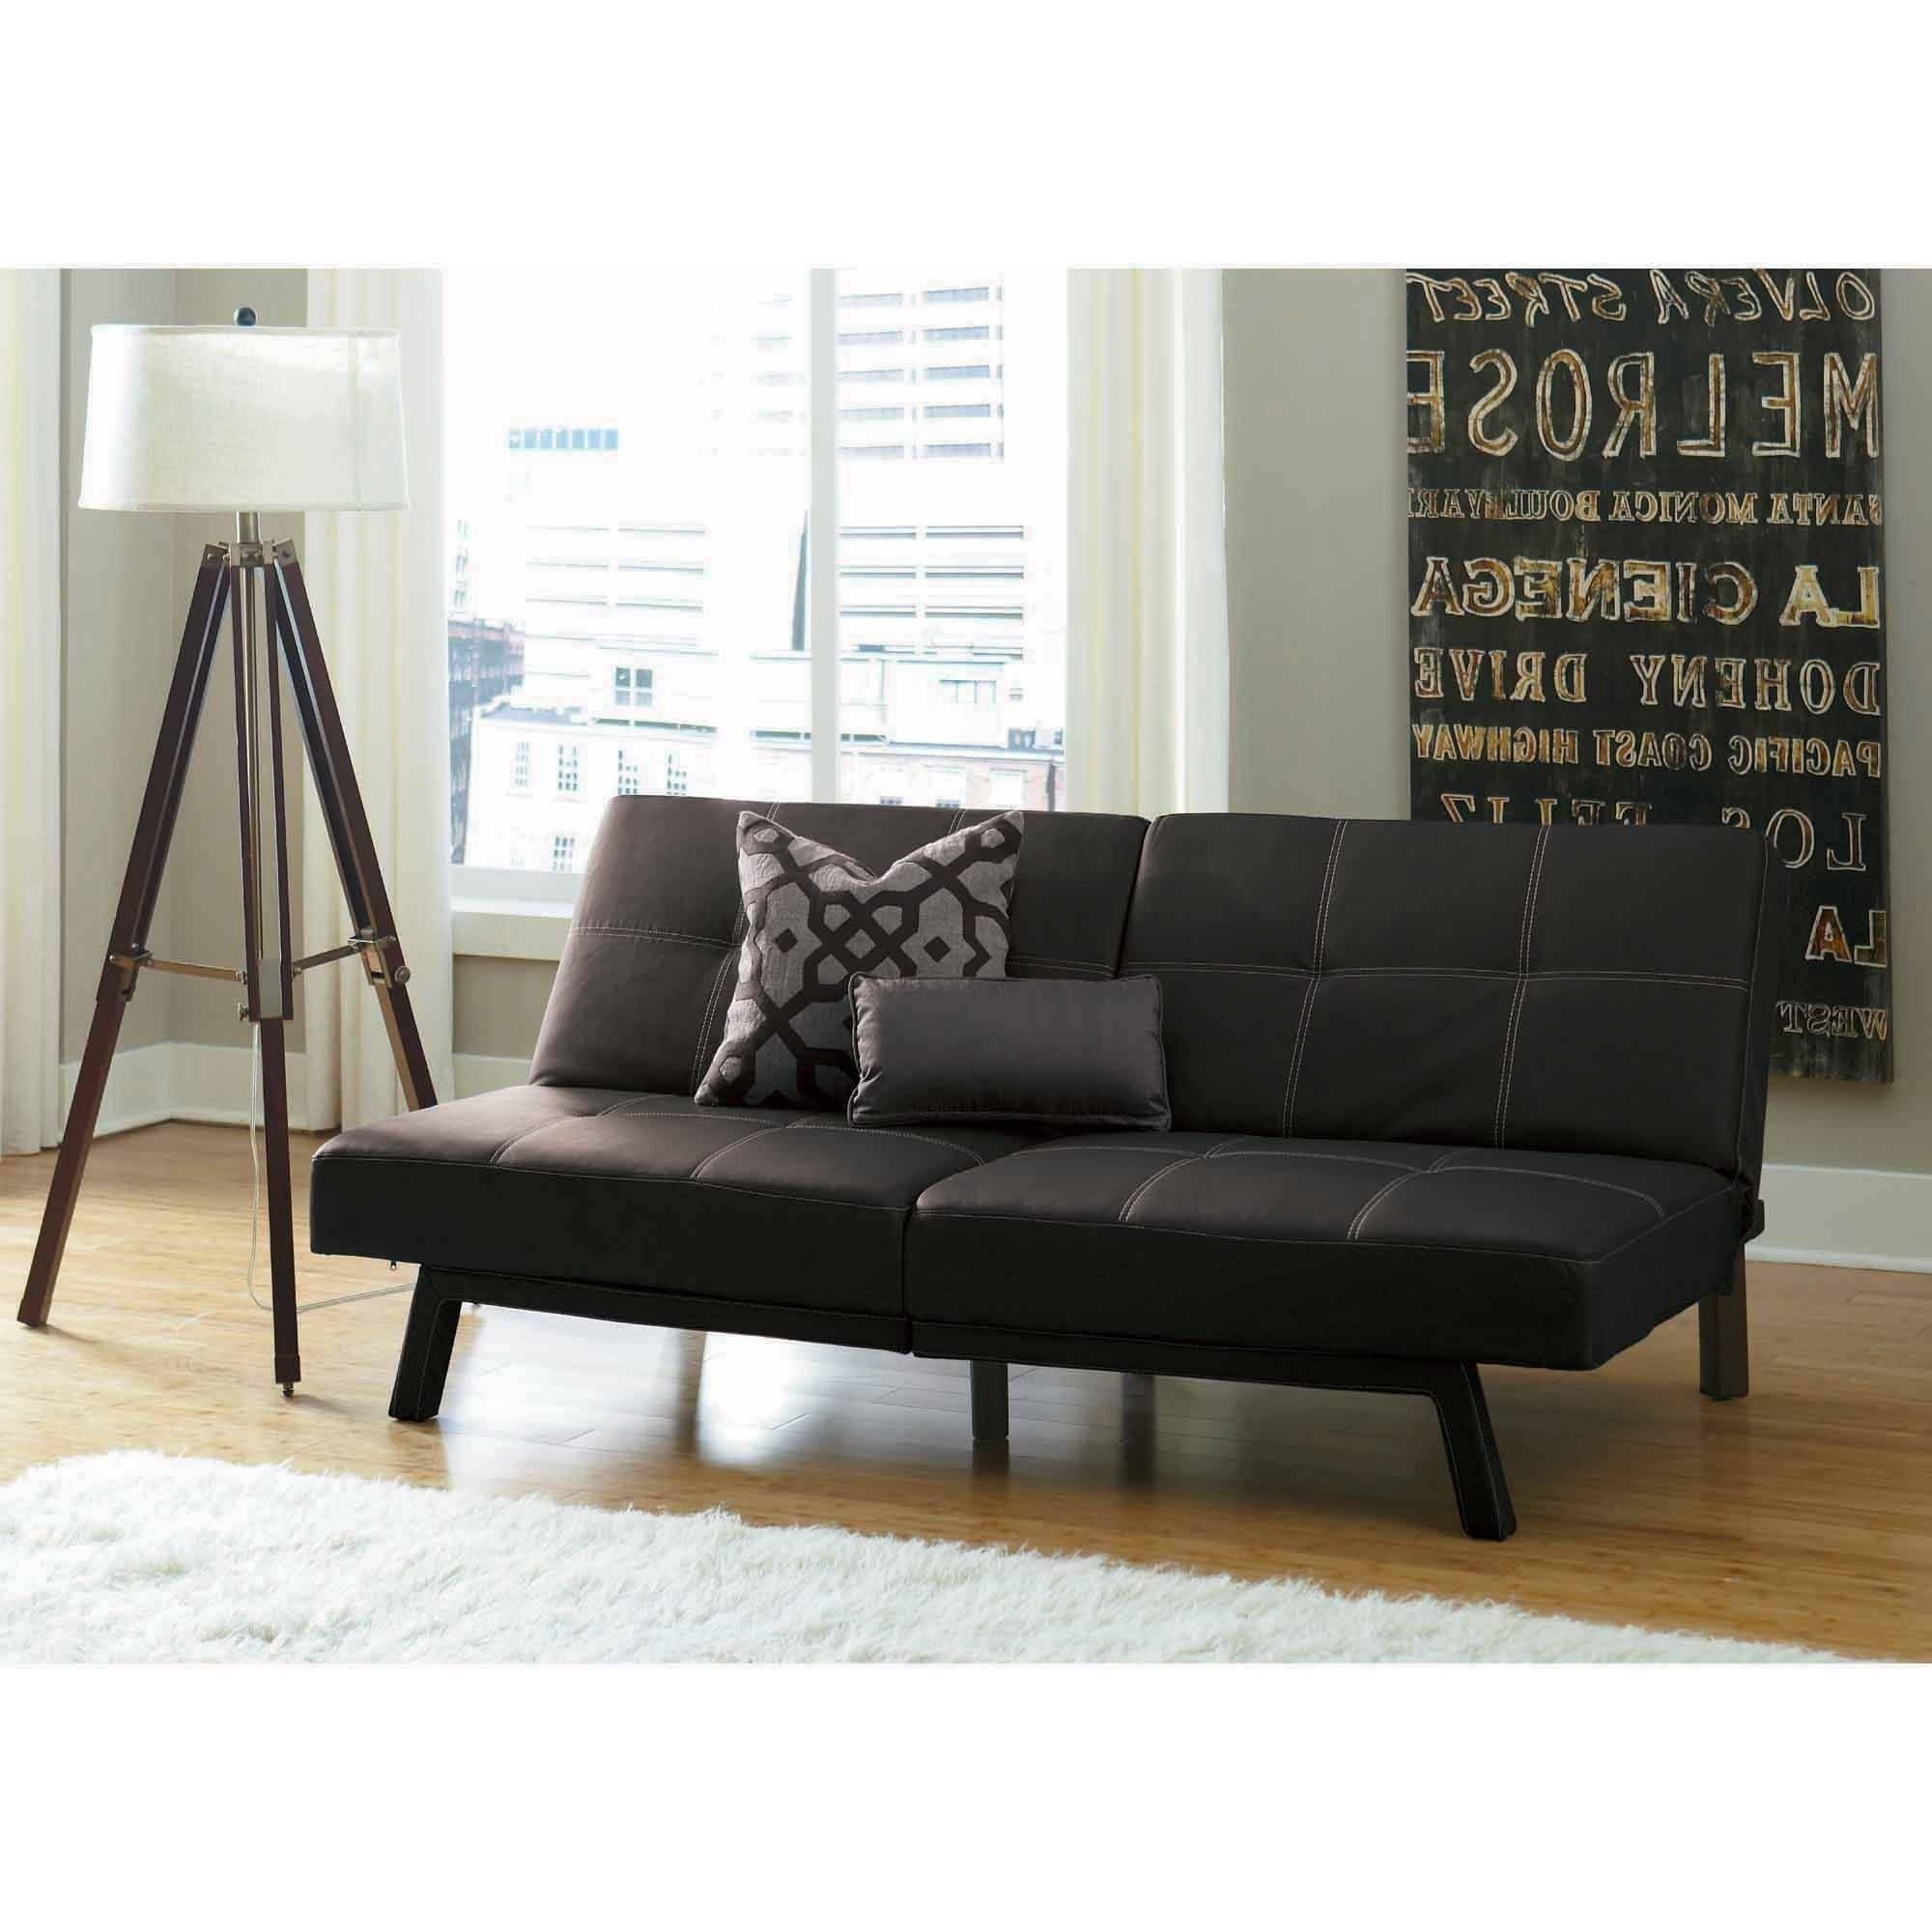 Medium image of mainstays contempo futon sofa bed multiple colors color chocolate